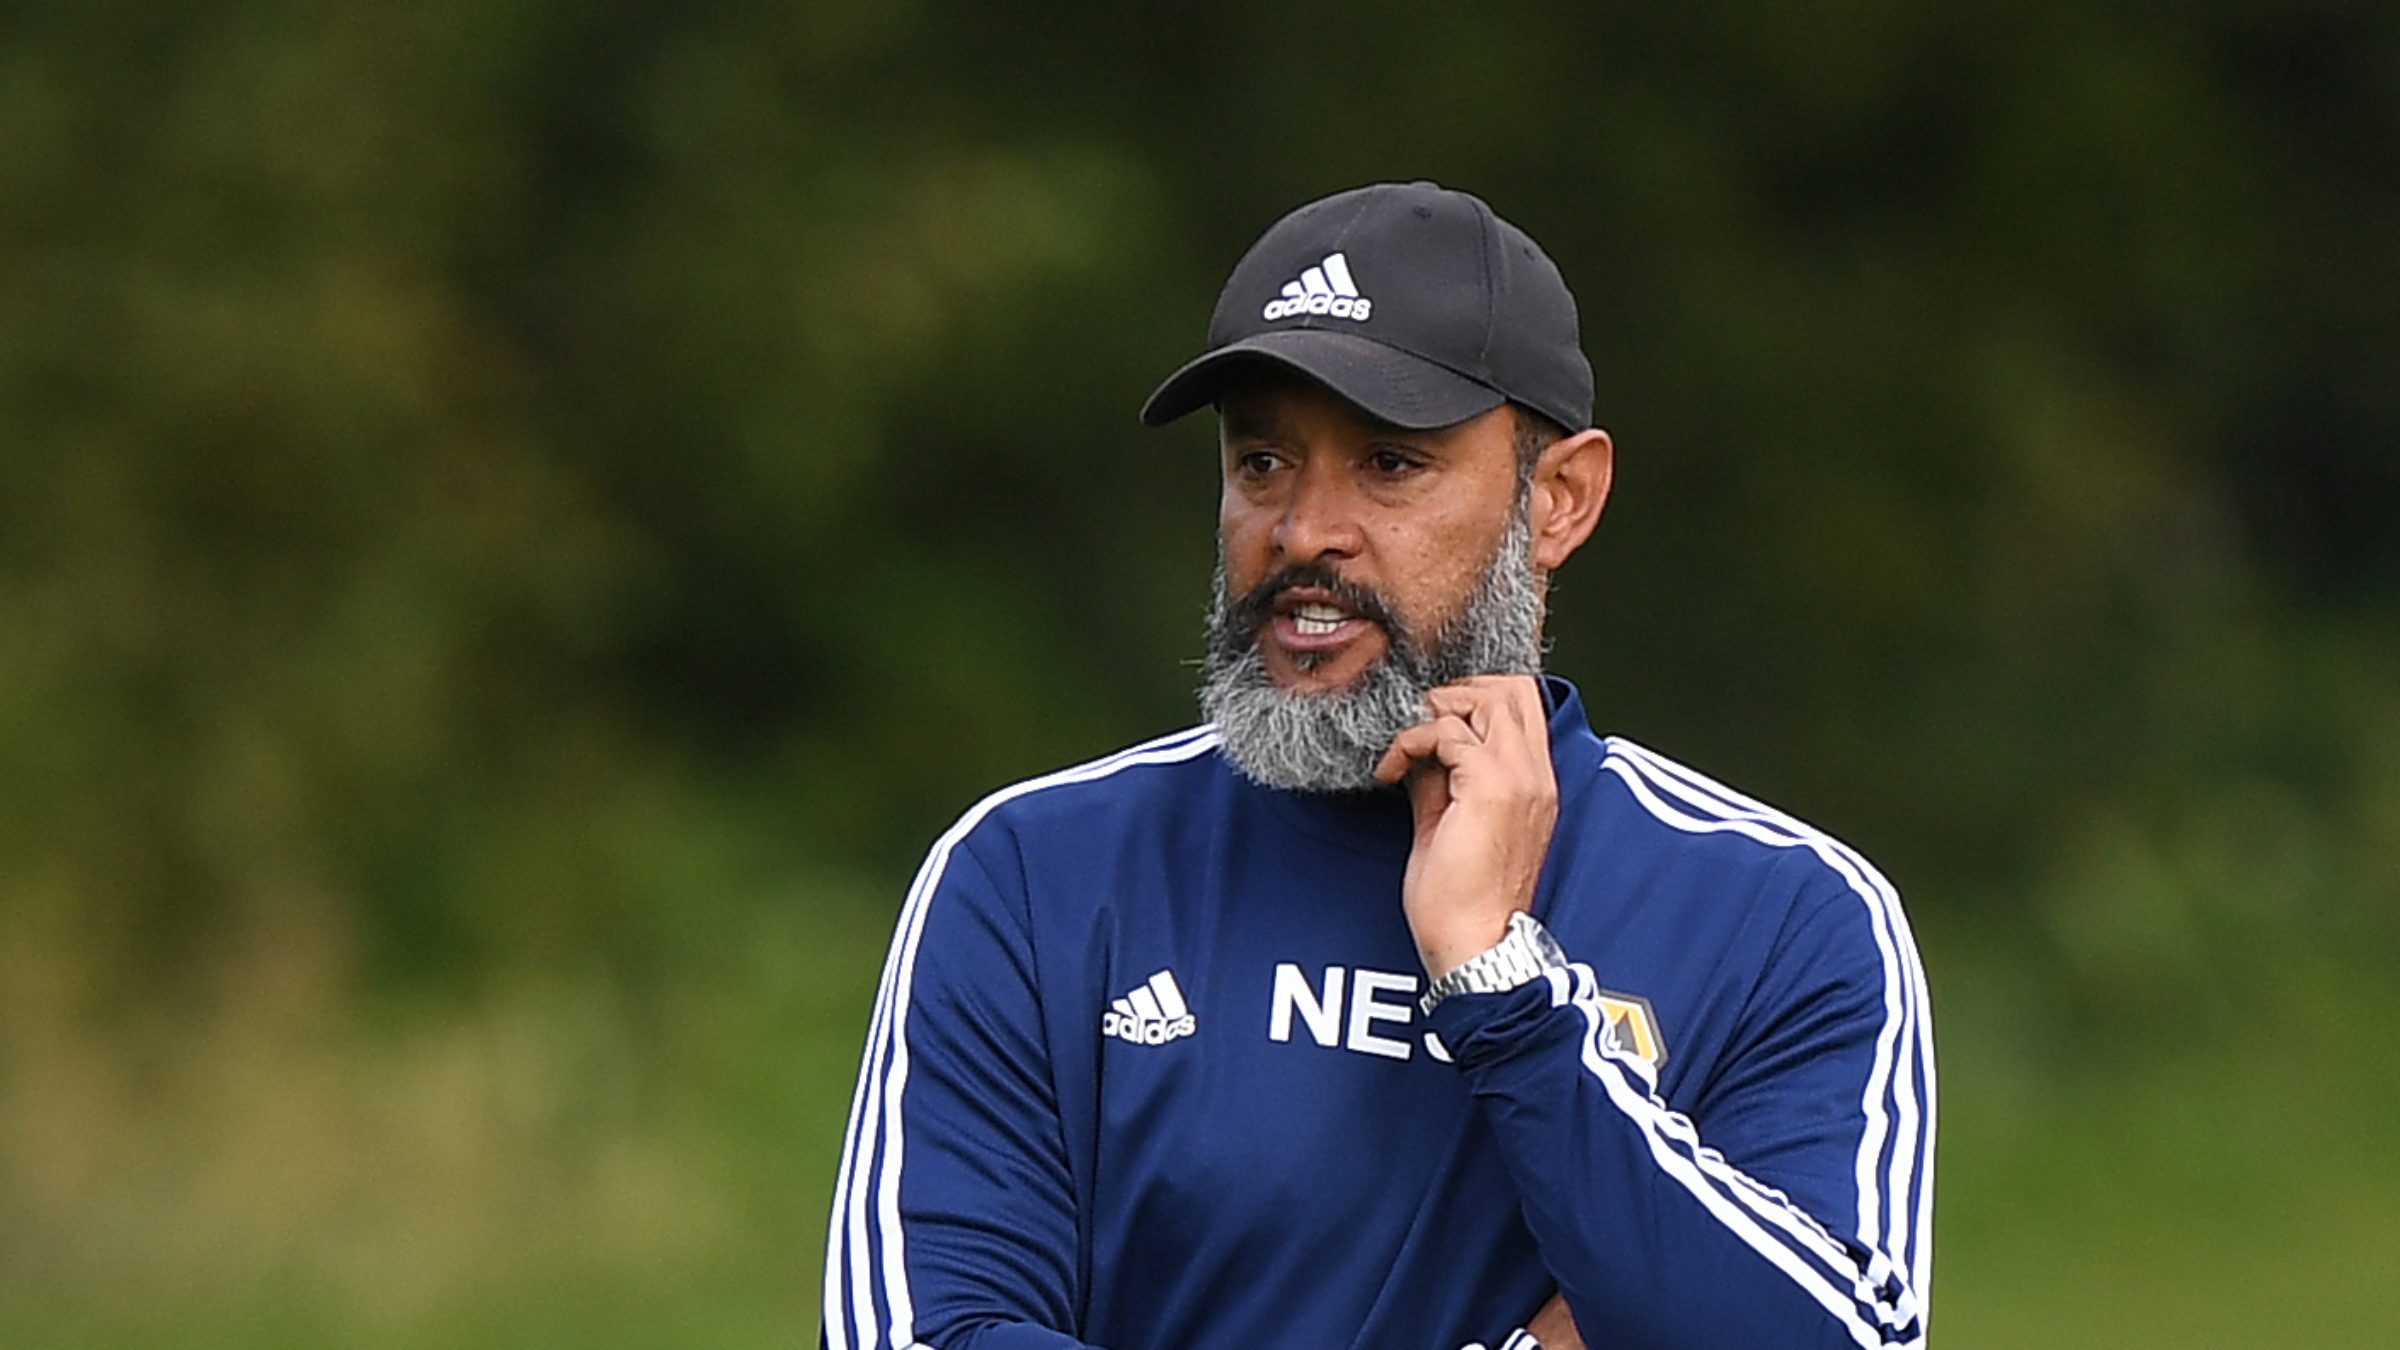 Whole squad ready for Chelsea, says Nuno